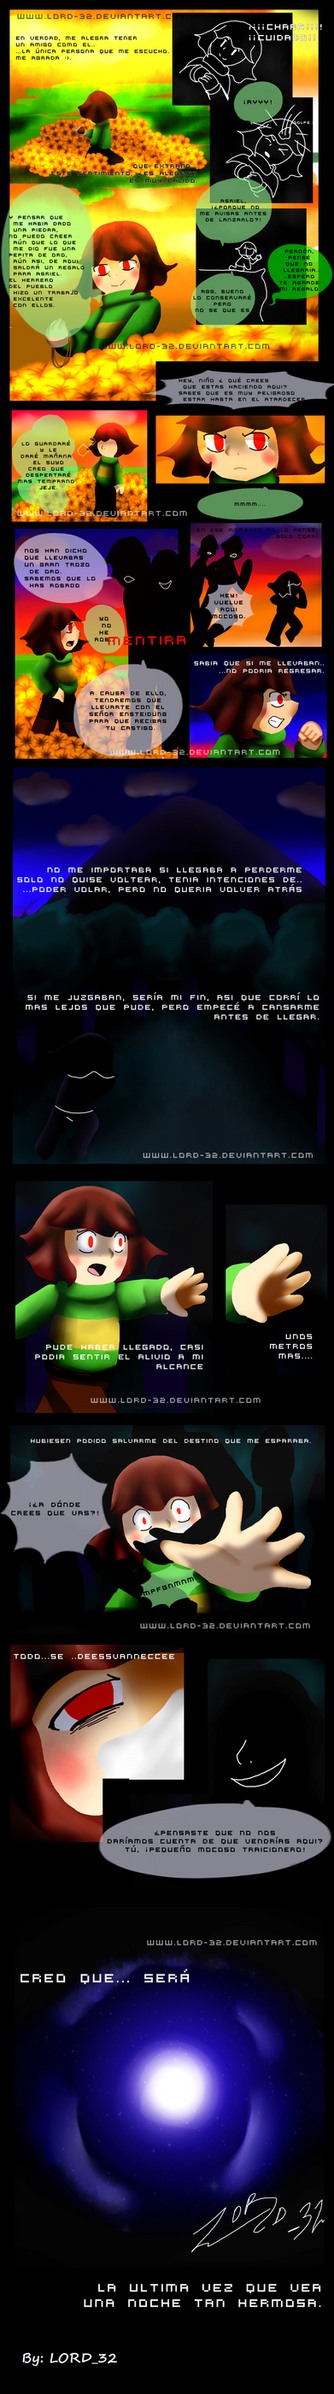 OportunityTale #2 by Lord-32